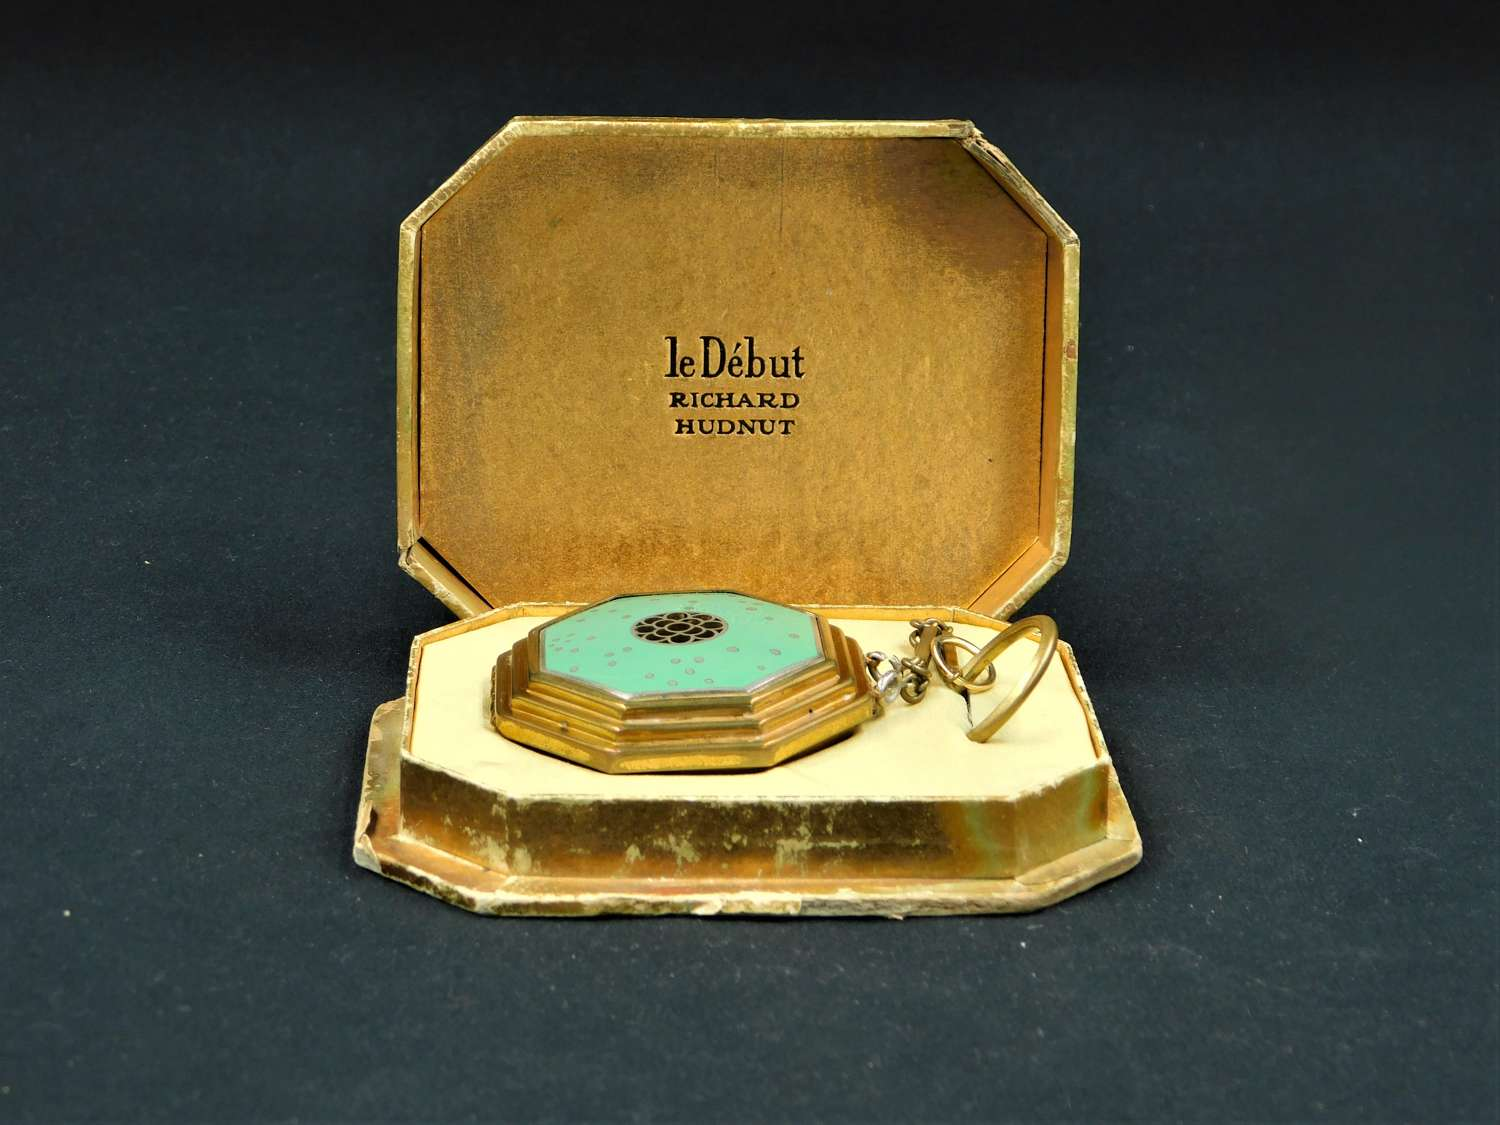 Art Deco Richard Hudnut 'Le Debut' Compact